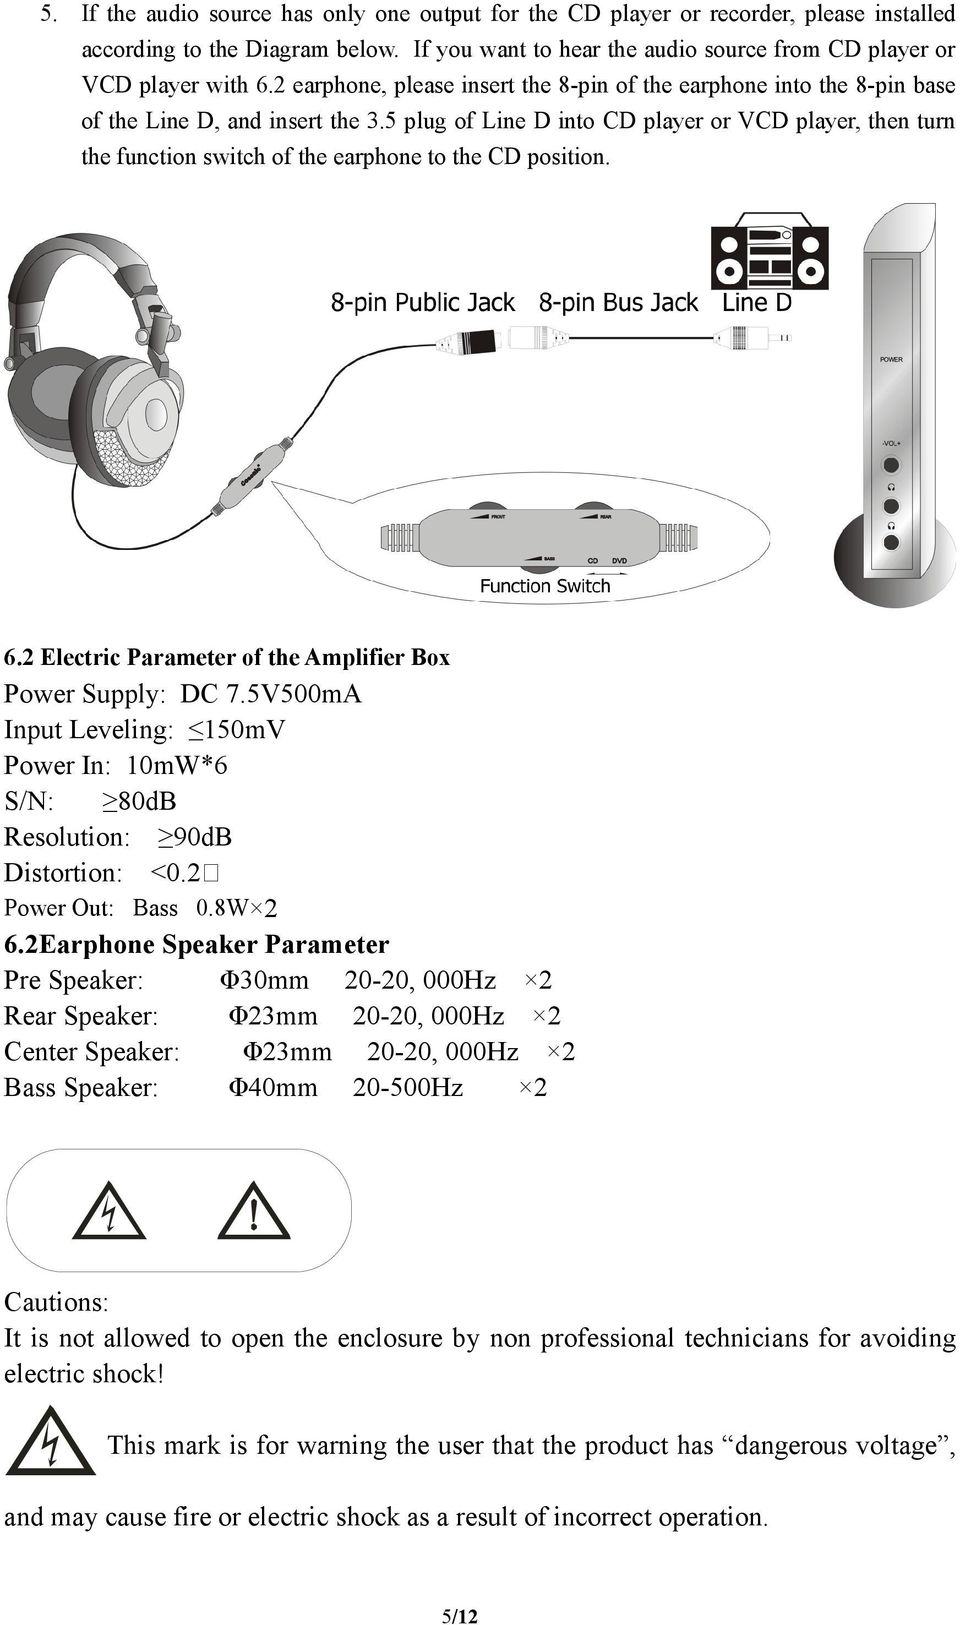 5 plug of Line D into CD player or VCD player, then turn the function switch of the earphone to the CD position. 6.2 Electric Parameter of the Amplifier Box Power Supply: DC 7.